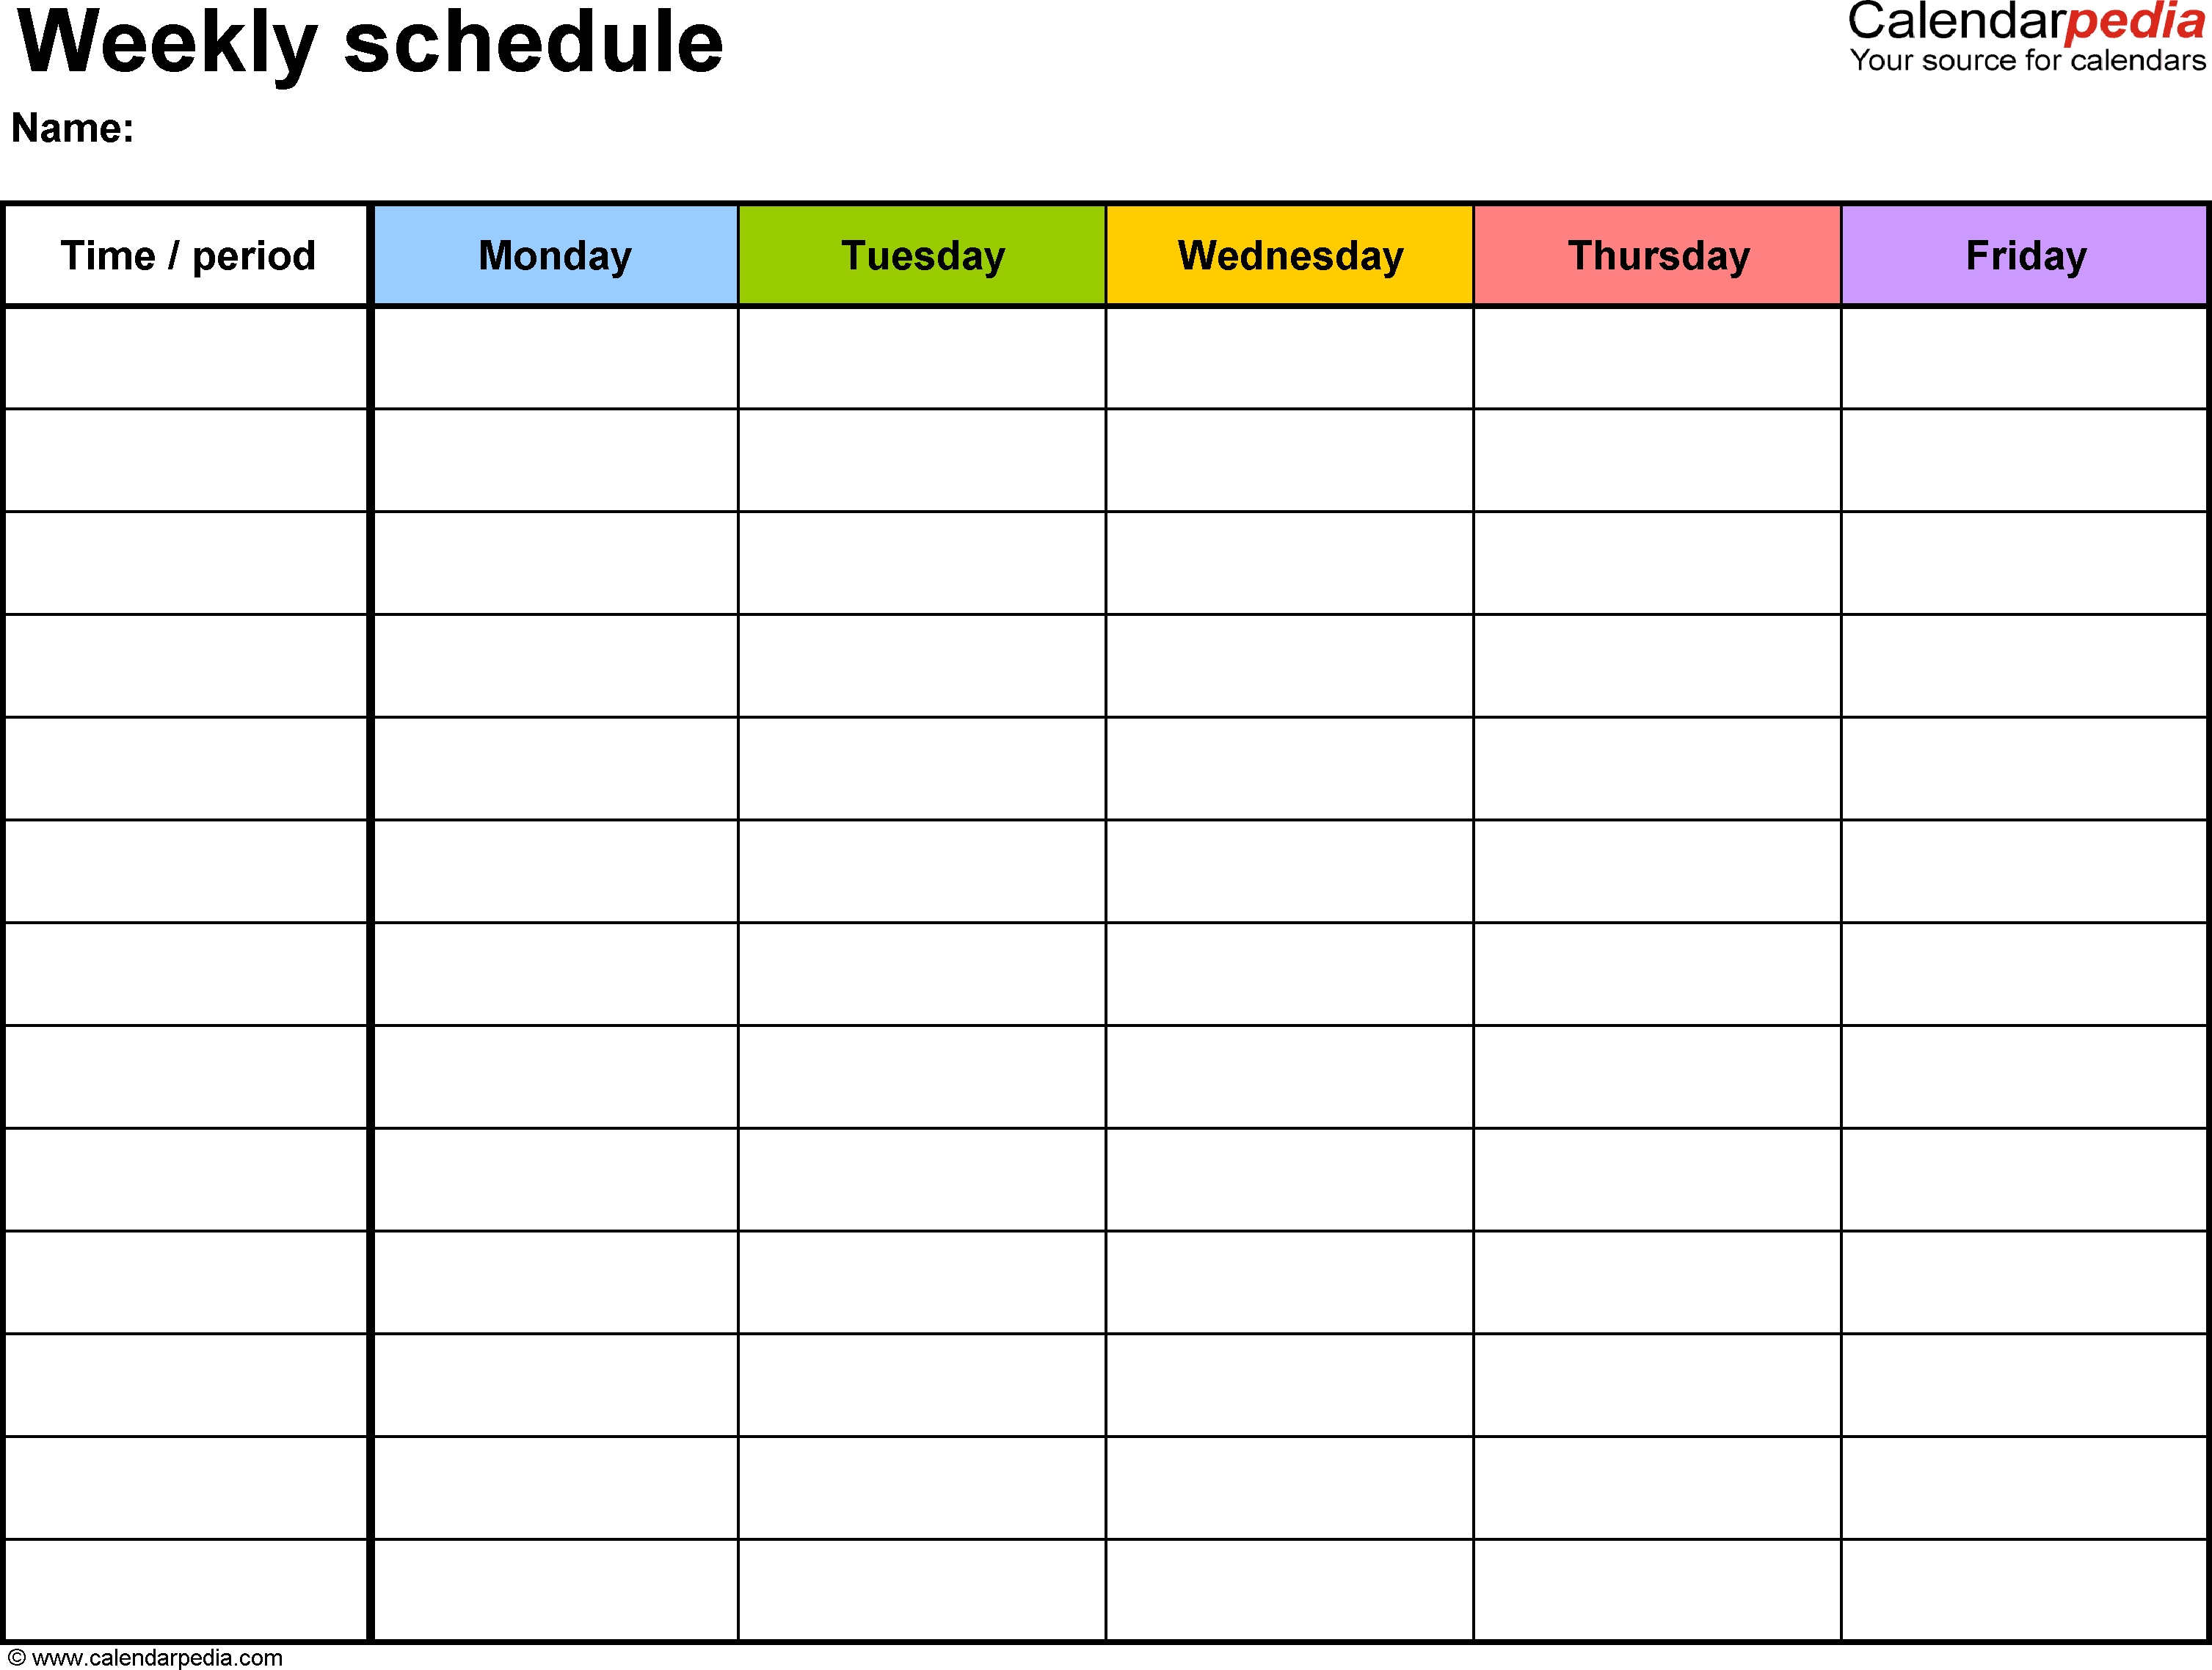 Free Weekly Schedule Templates For Word - 18 Templates within 7-Day Week Blank Calendar Template